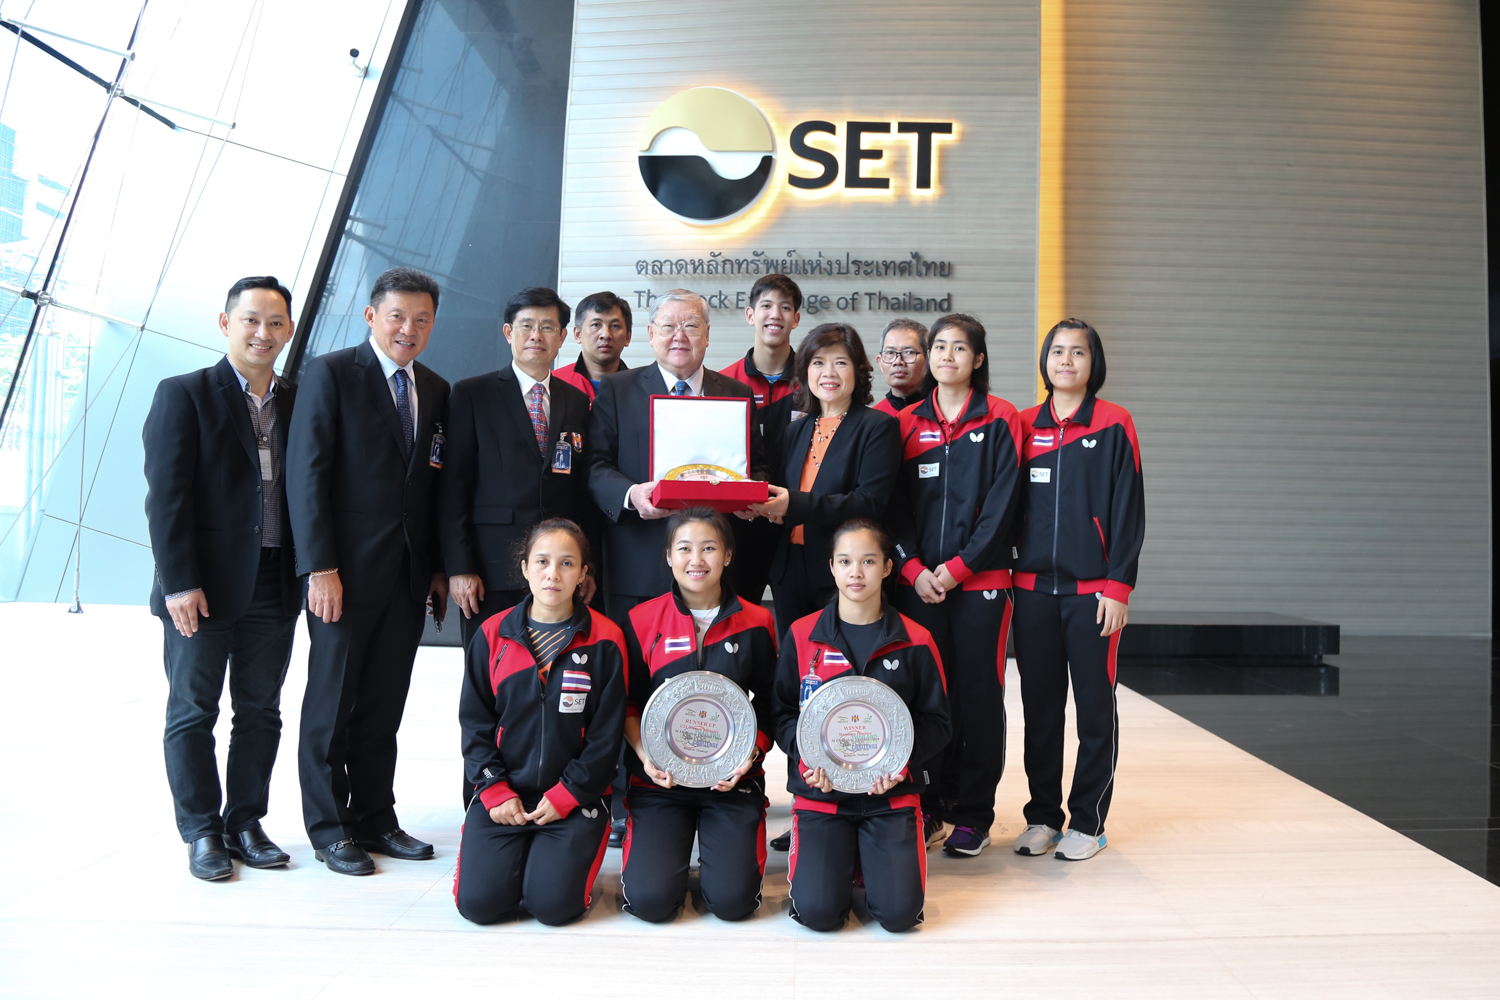 SET Table Tennis for Everyone